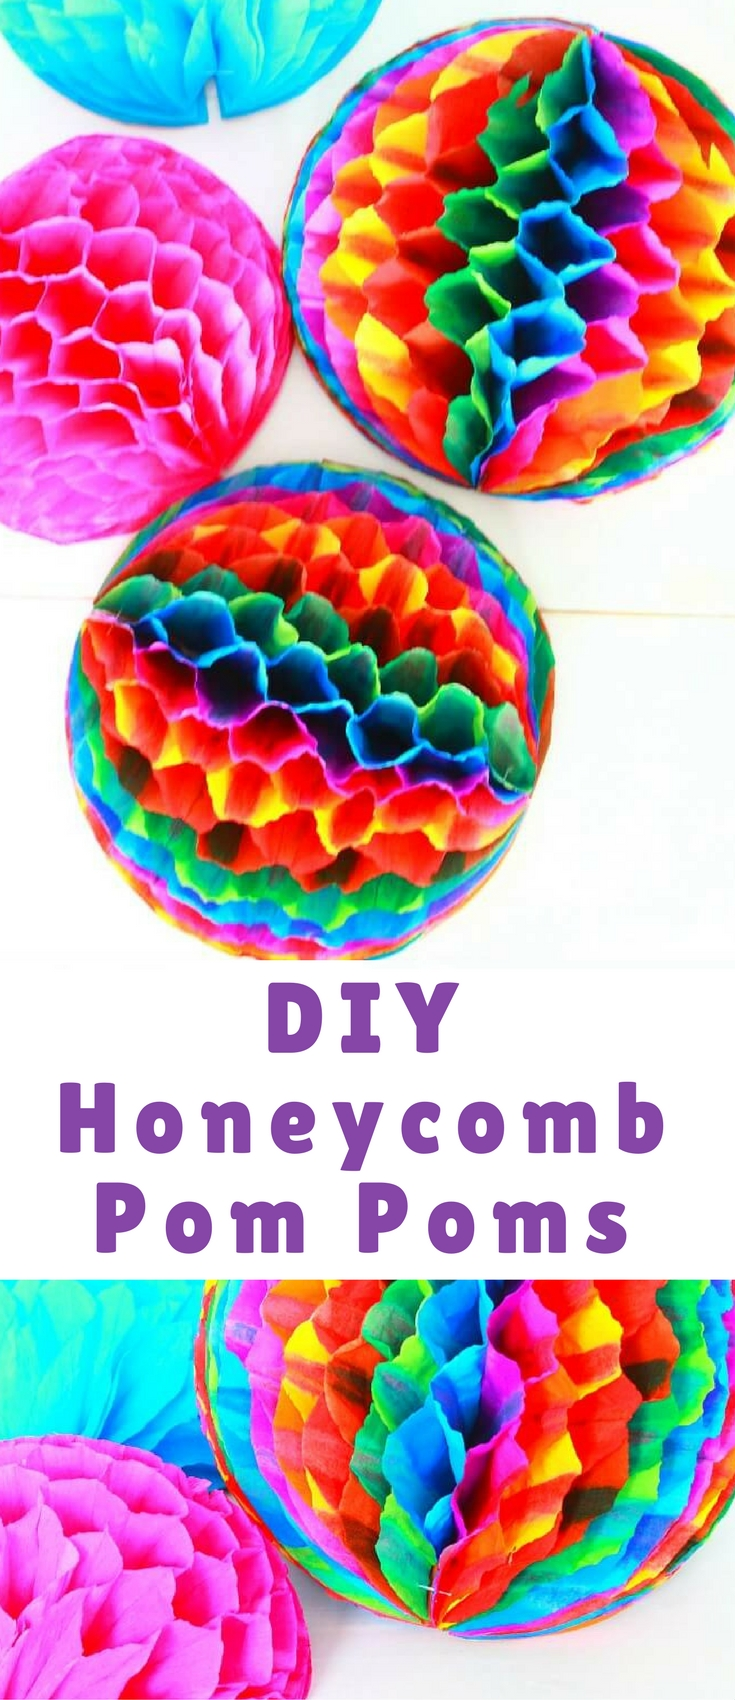 Throwing a party soon? Use some of these adorable DIY honeycomb pom poms made with crepe paper for a fun decor, perfect for any party!